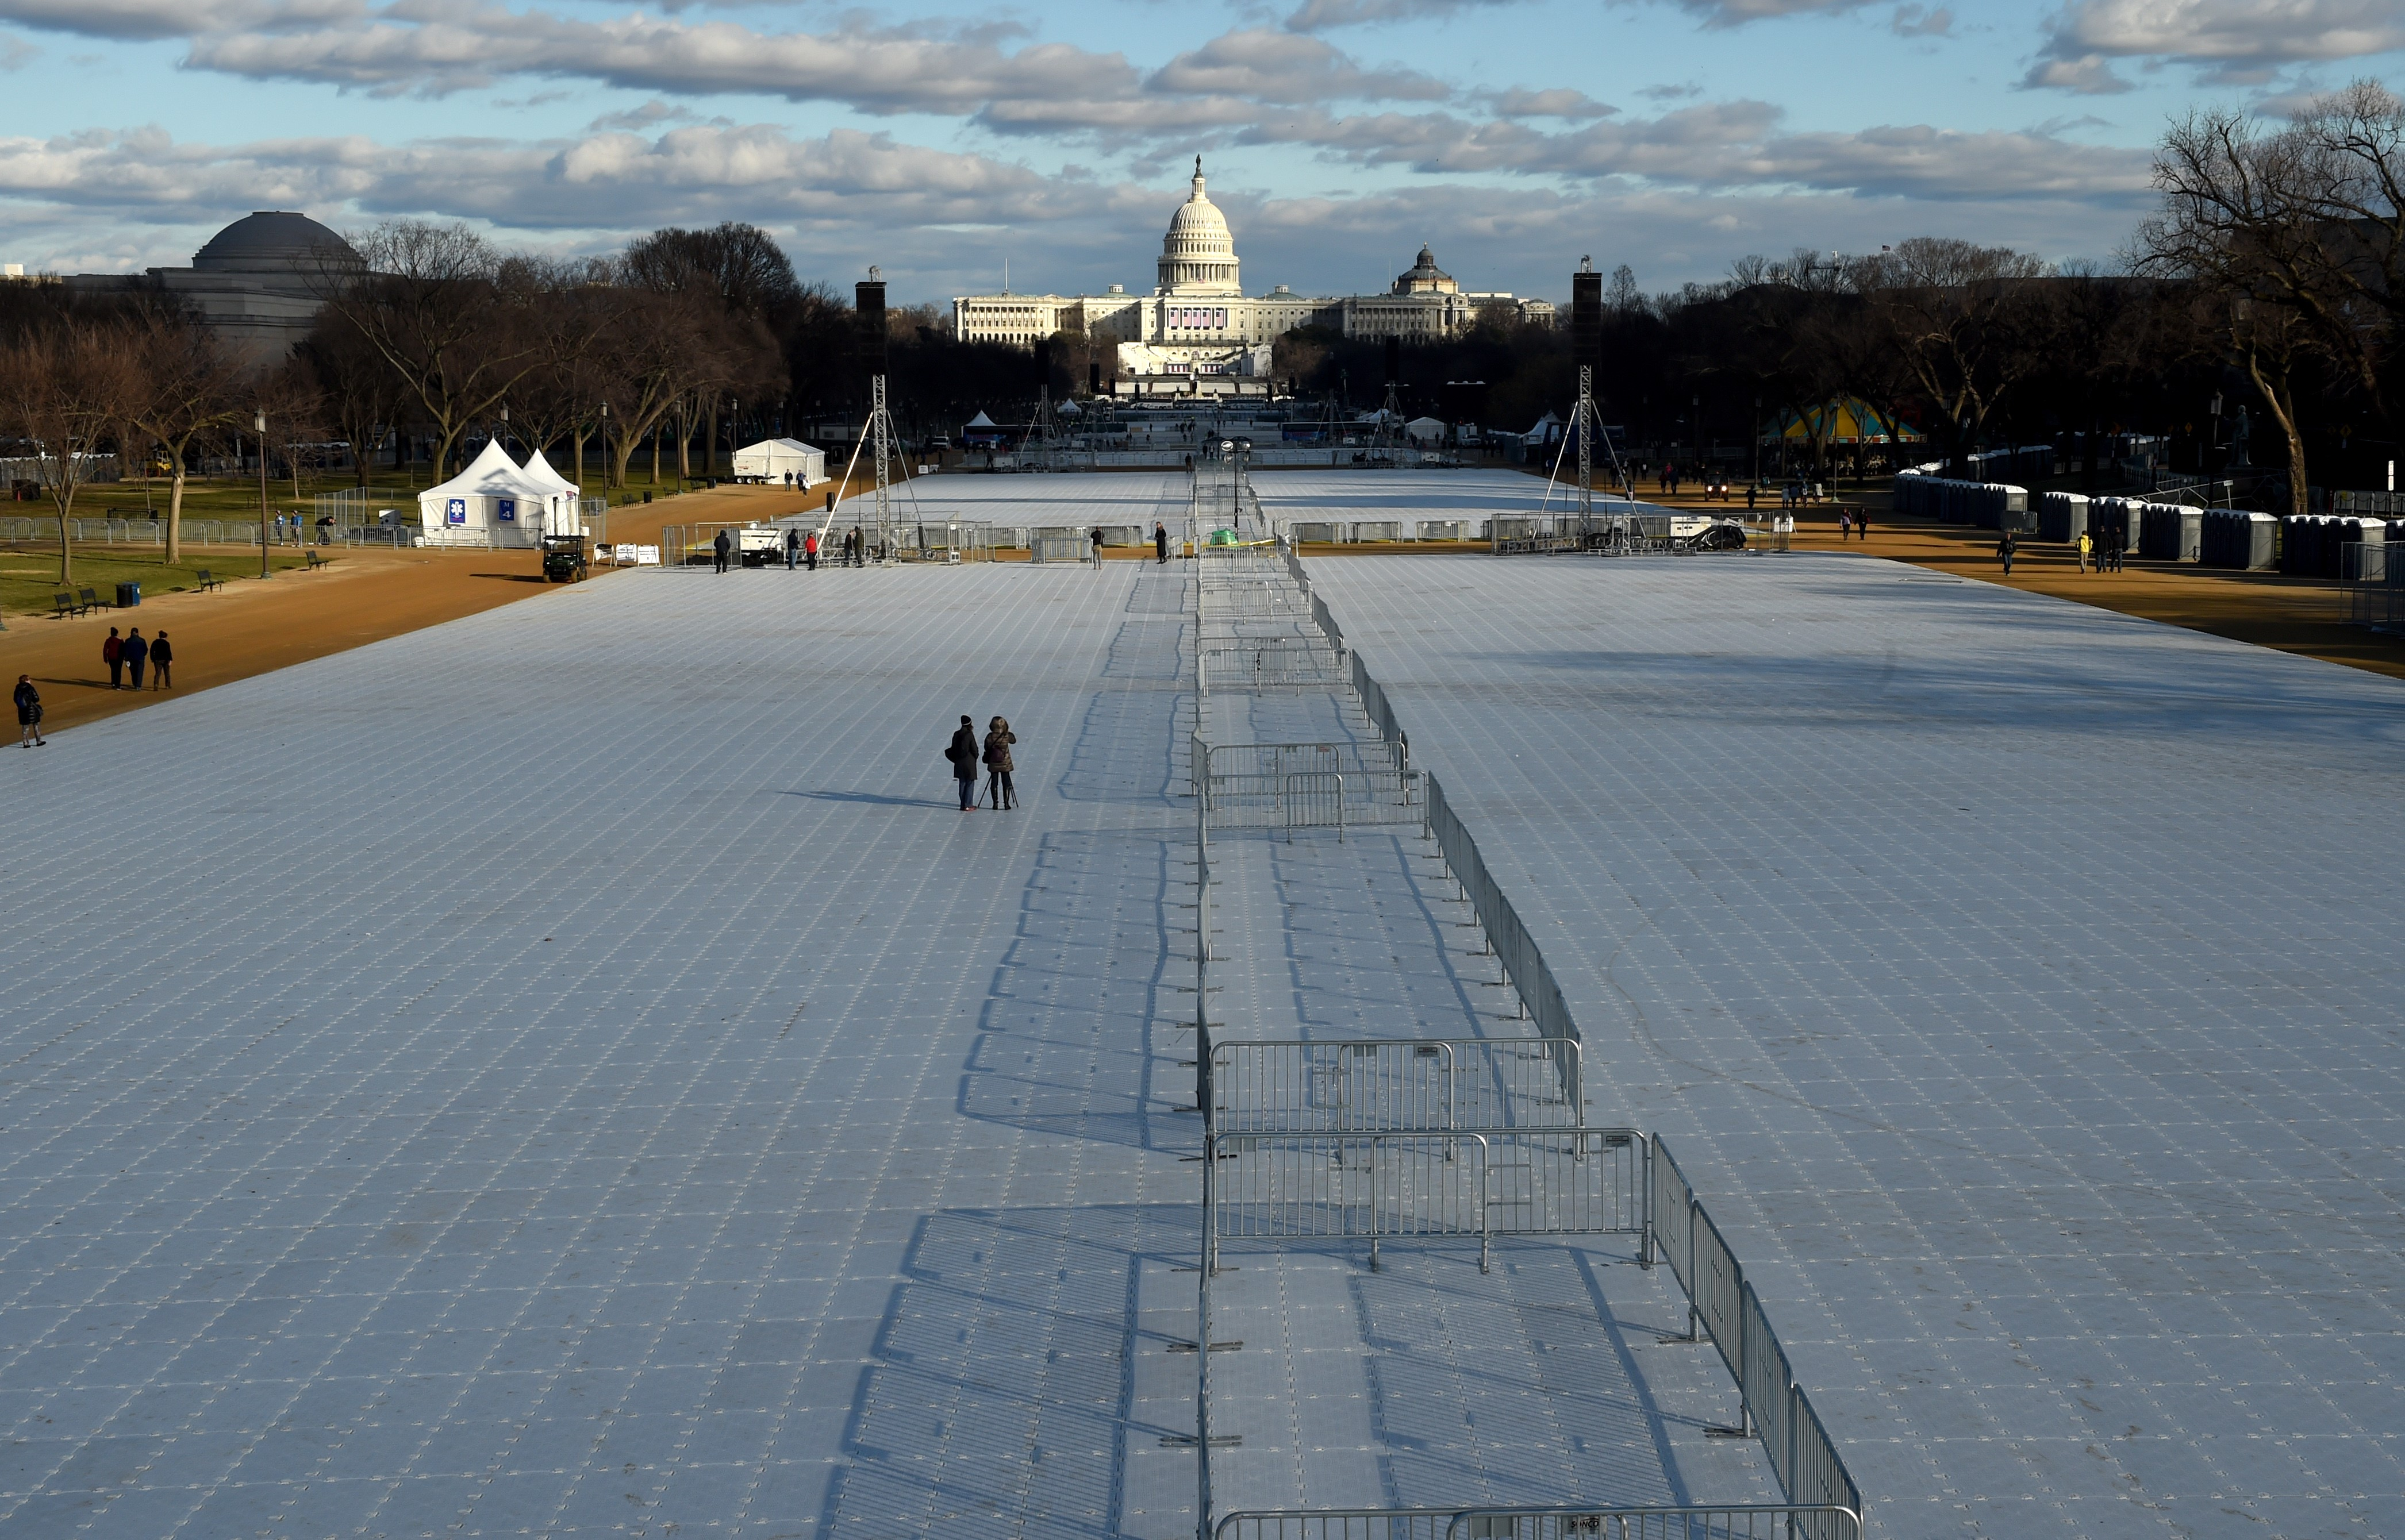 Washington DC is preparing the Inauguration of Donald Trump to take place January 20, 2017 at the US Capitol.